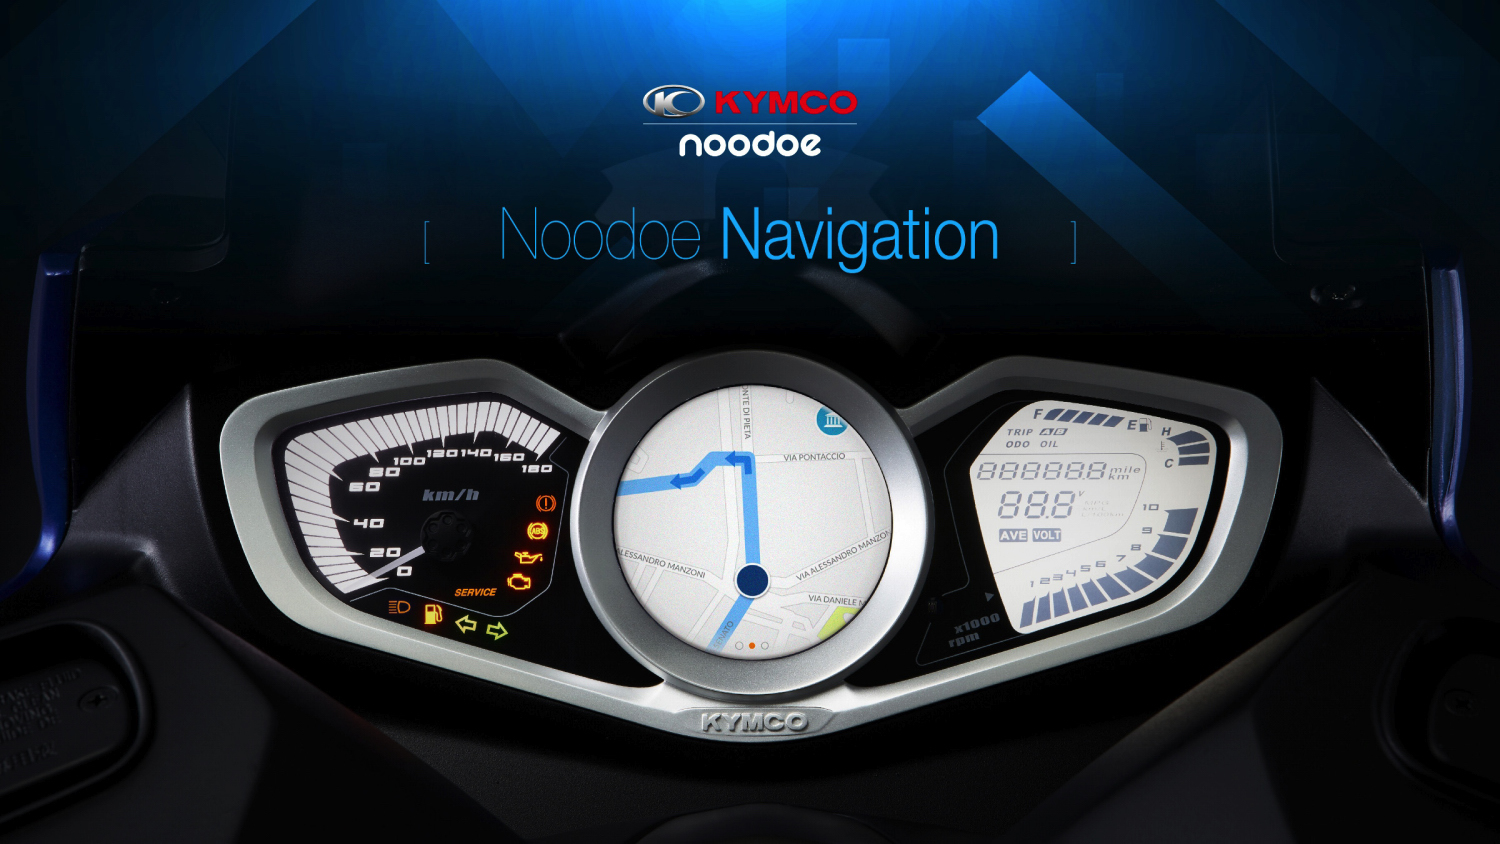 NEW XCITING S 400_12_Noodoe Navigation.JPG